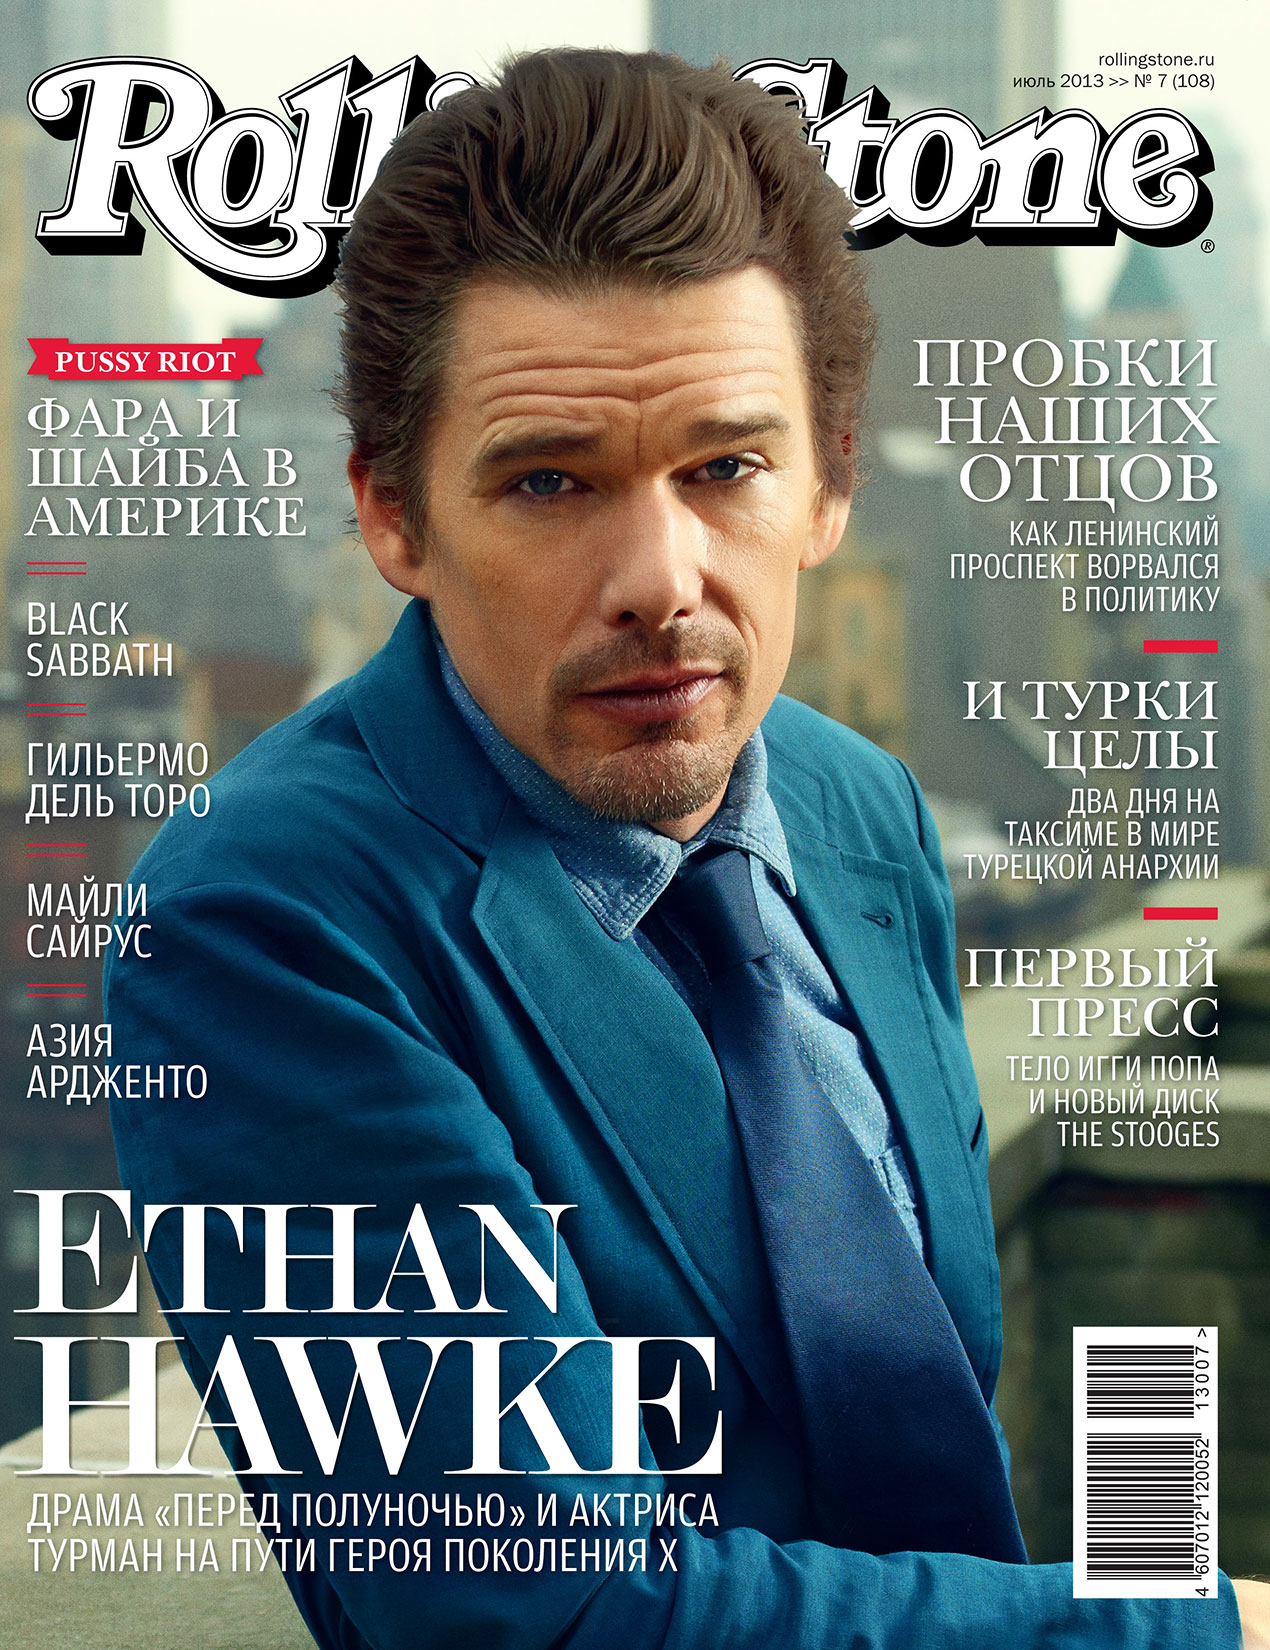 E-Hawke-Rolling-Stone-Coverby-Robert-Ascroft.jpg